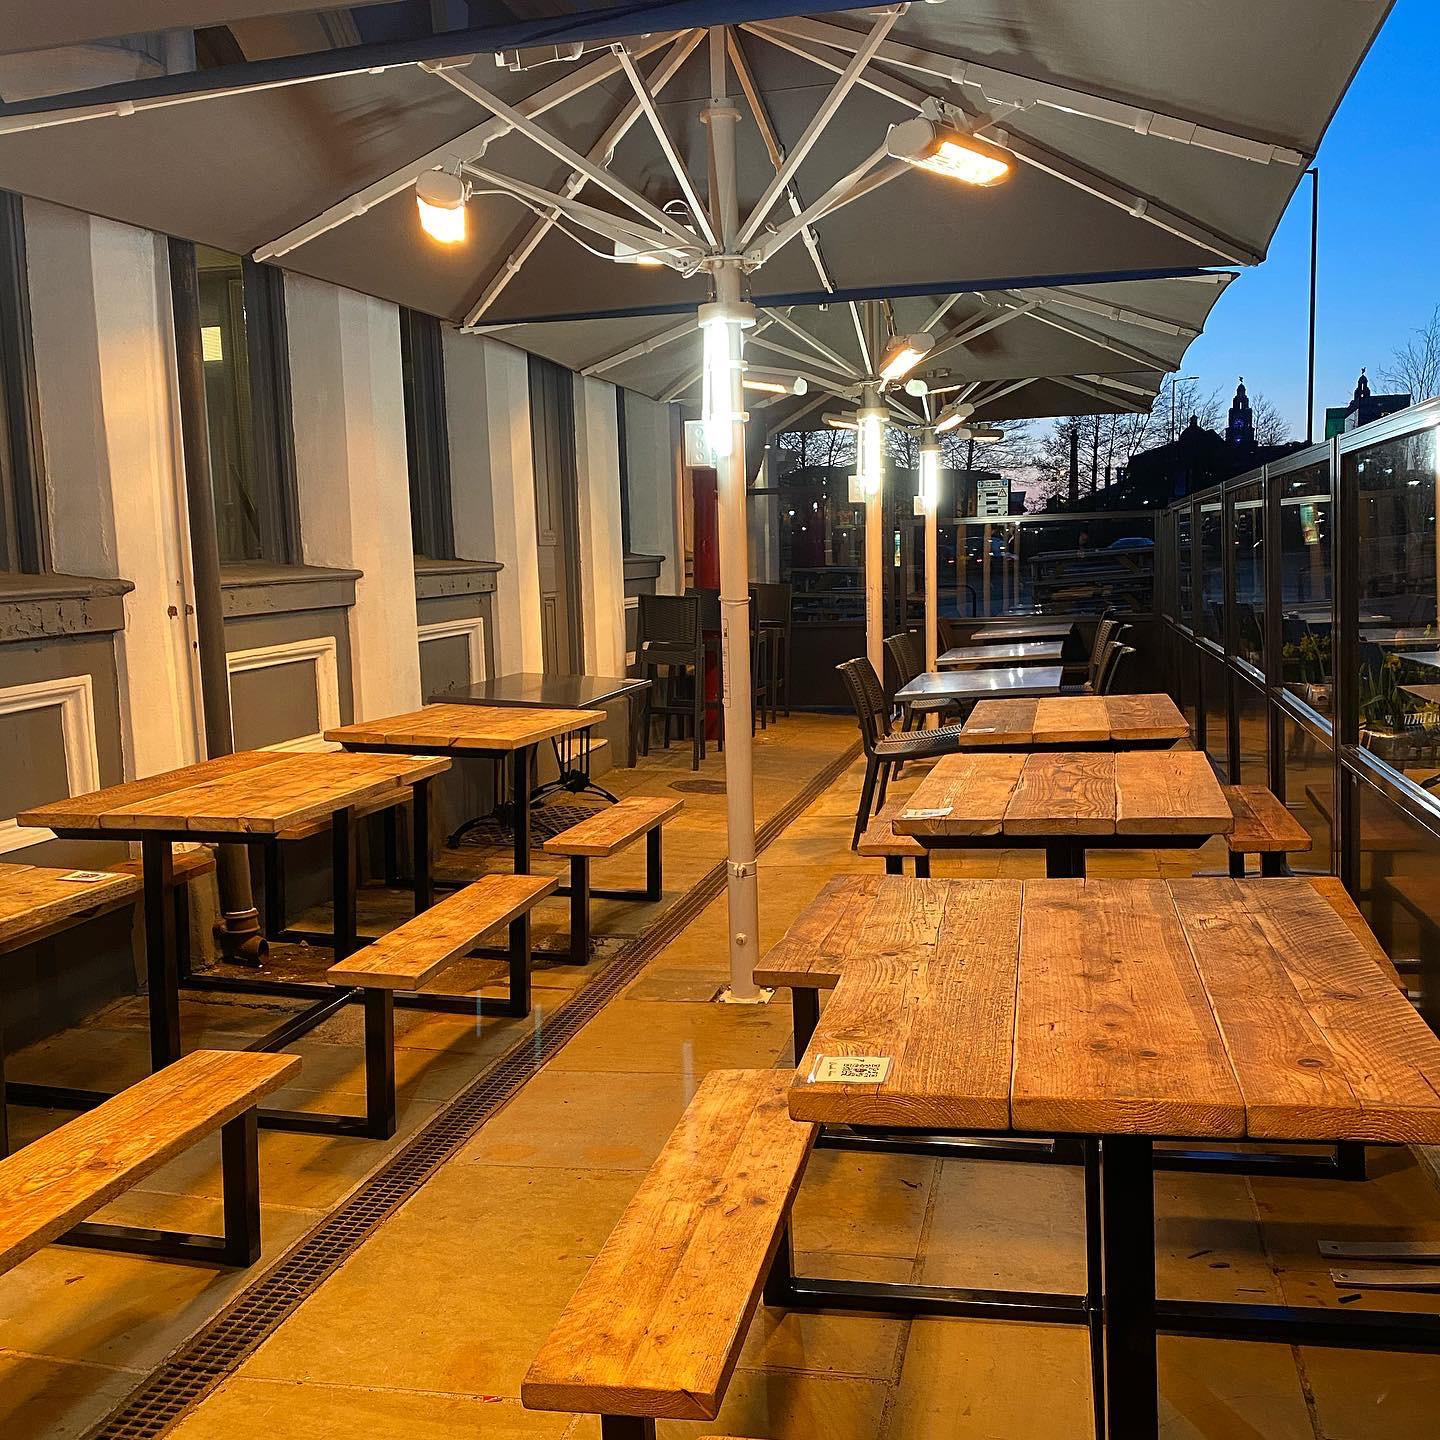 <p>Barriers & Screens Gibli Terrace Screens – Parasols Bella – Outdoor Heaters & Lighting – Baltic Fleet</p> <p></p> <p>Transformed using Gibli Terrace Screens & Bella Parasol with outstanding outdoor heaters</p> <p></p> <p>Suitable for Pub Beer Garden Patio as well as other hospitality alfresco areas including Fish & Chip Restaurant Pavement Terraces</p> <p></p> <p>Frames and Glass are available in a variety of colours and options to include corporate branding or sponsor branding are also available.</p> <p></p> <p>Ideal solution to section off alfresco dining areas to allow for 2m social distancing measures, whilst encouraging customer to visit and enjoy what they have always liked to do, dine and socialise</p> <p></p> <p>Includes Parasols & outdoor Heaters to keep people dry & warm whatever the weather</p>